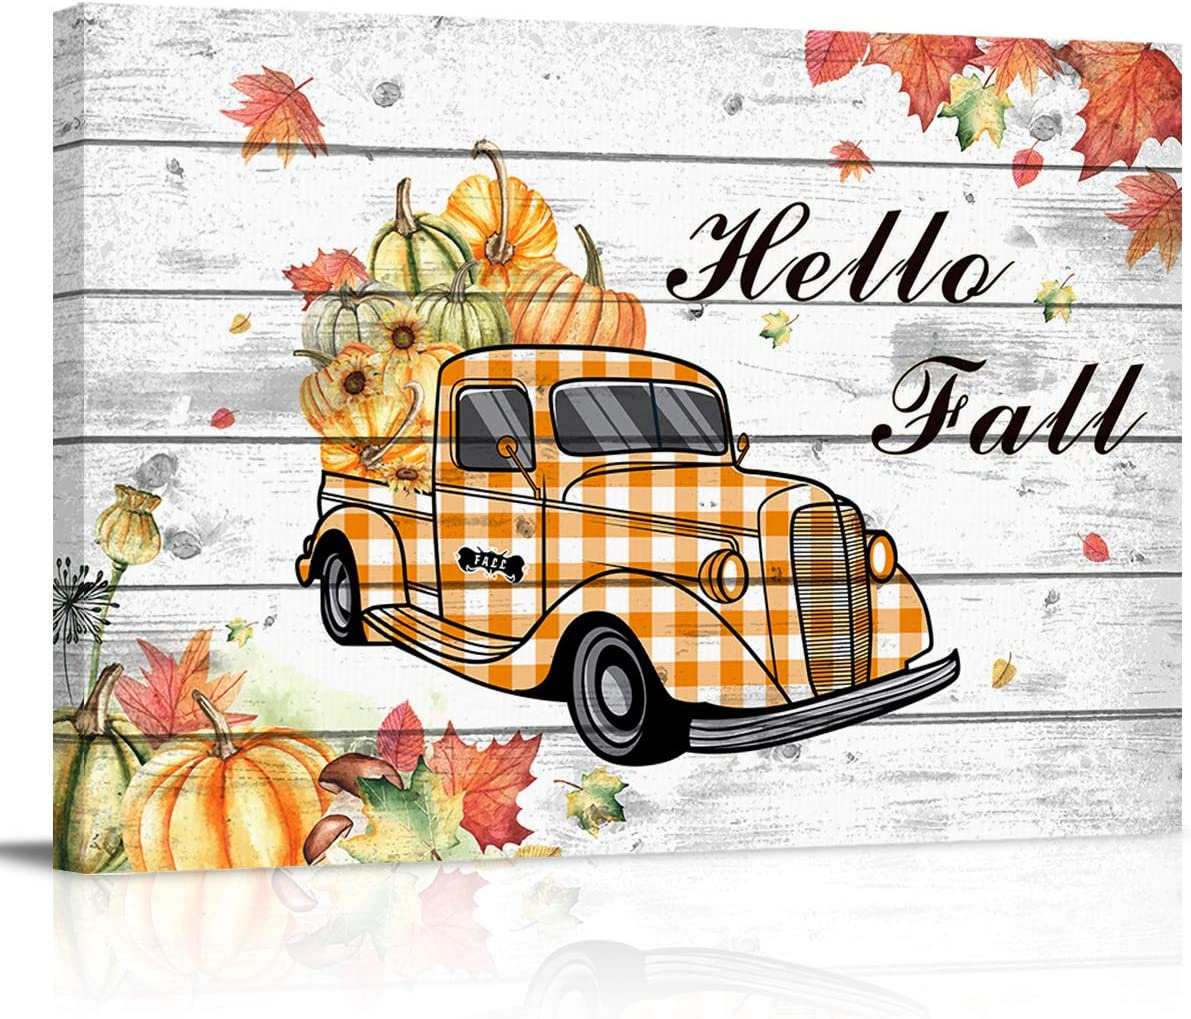 Meet 1998 Rectangle Canvas Print Wall Art Pumpkin Truck Leaf Artworks Living Room Bedroom Home Art Decor, Thanksgiving Hello Fall Oil Painting for Office,Ready to Hang, 16x24 inches